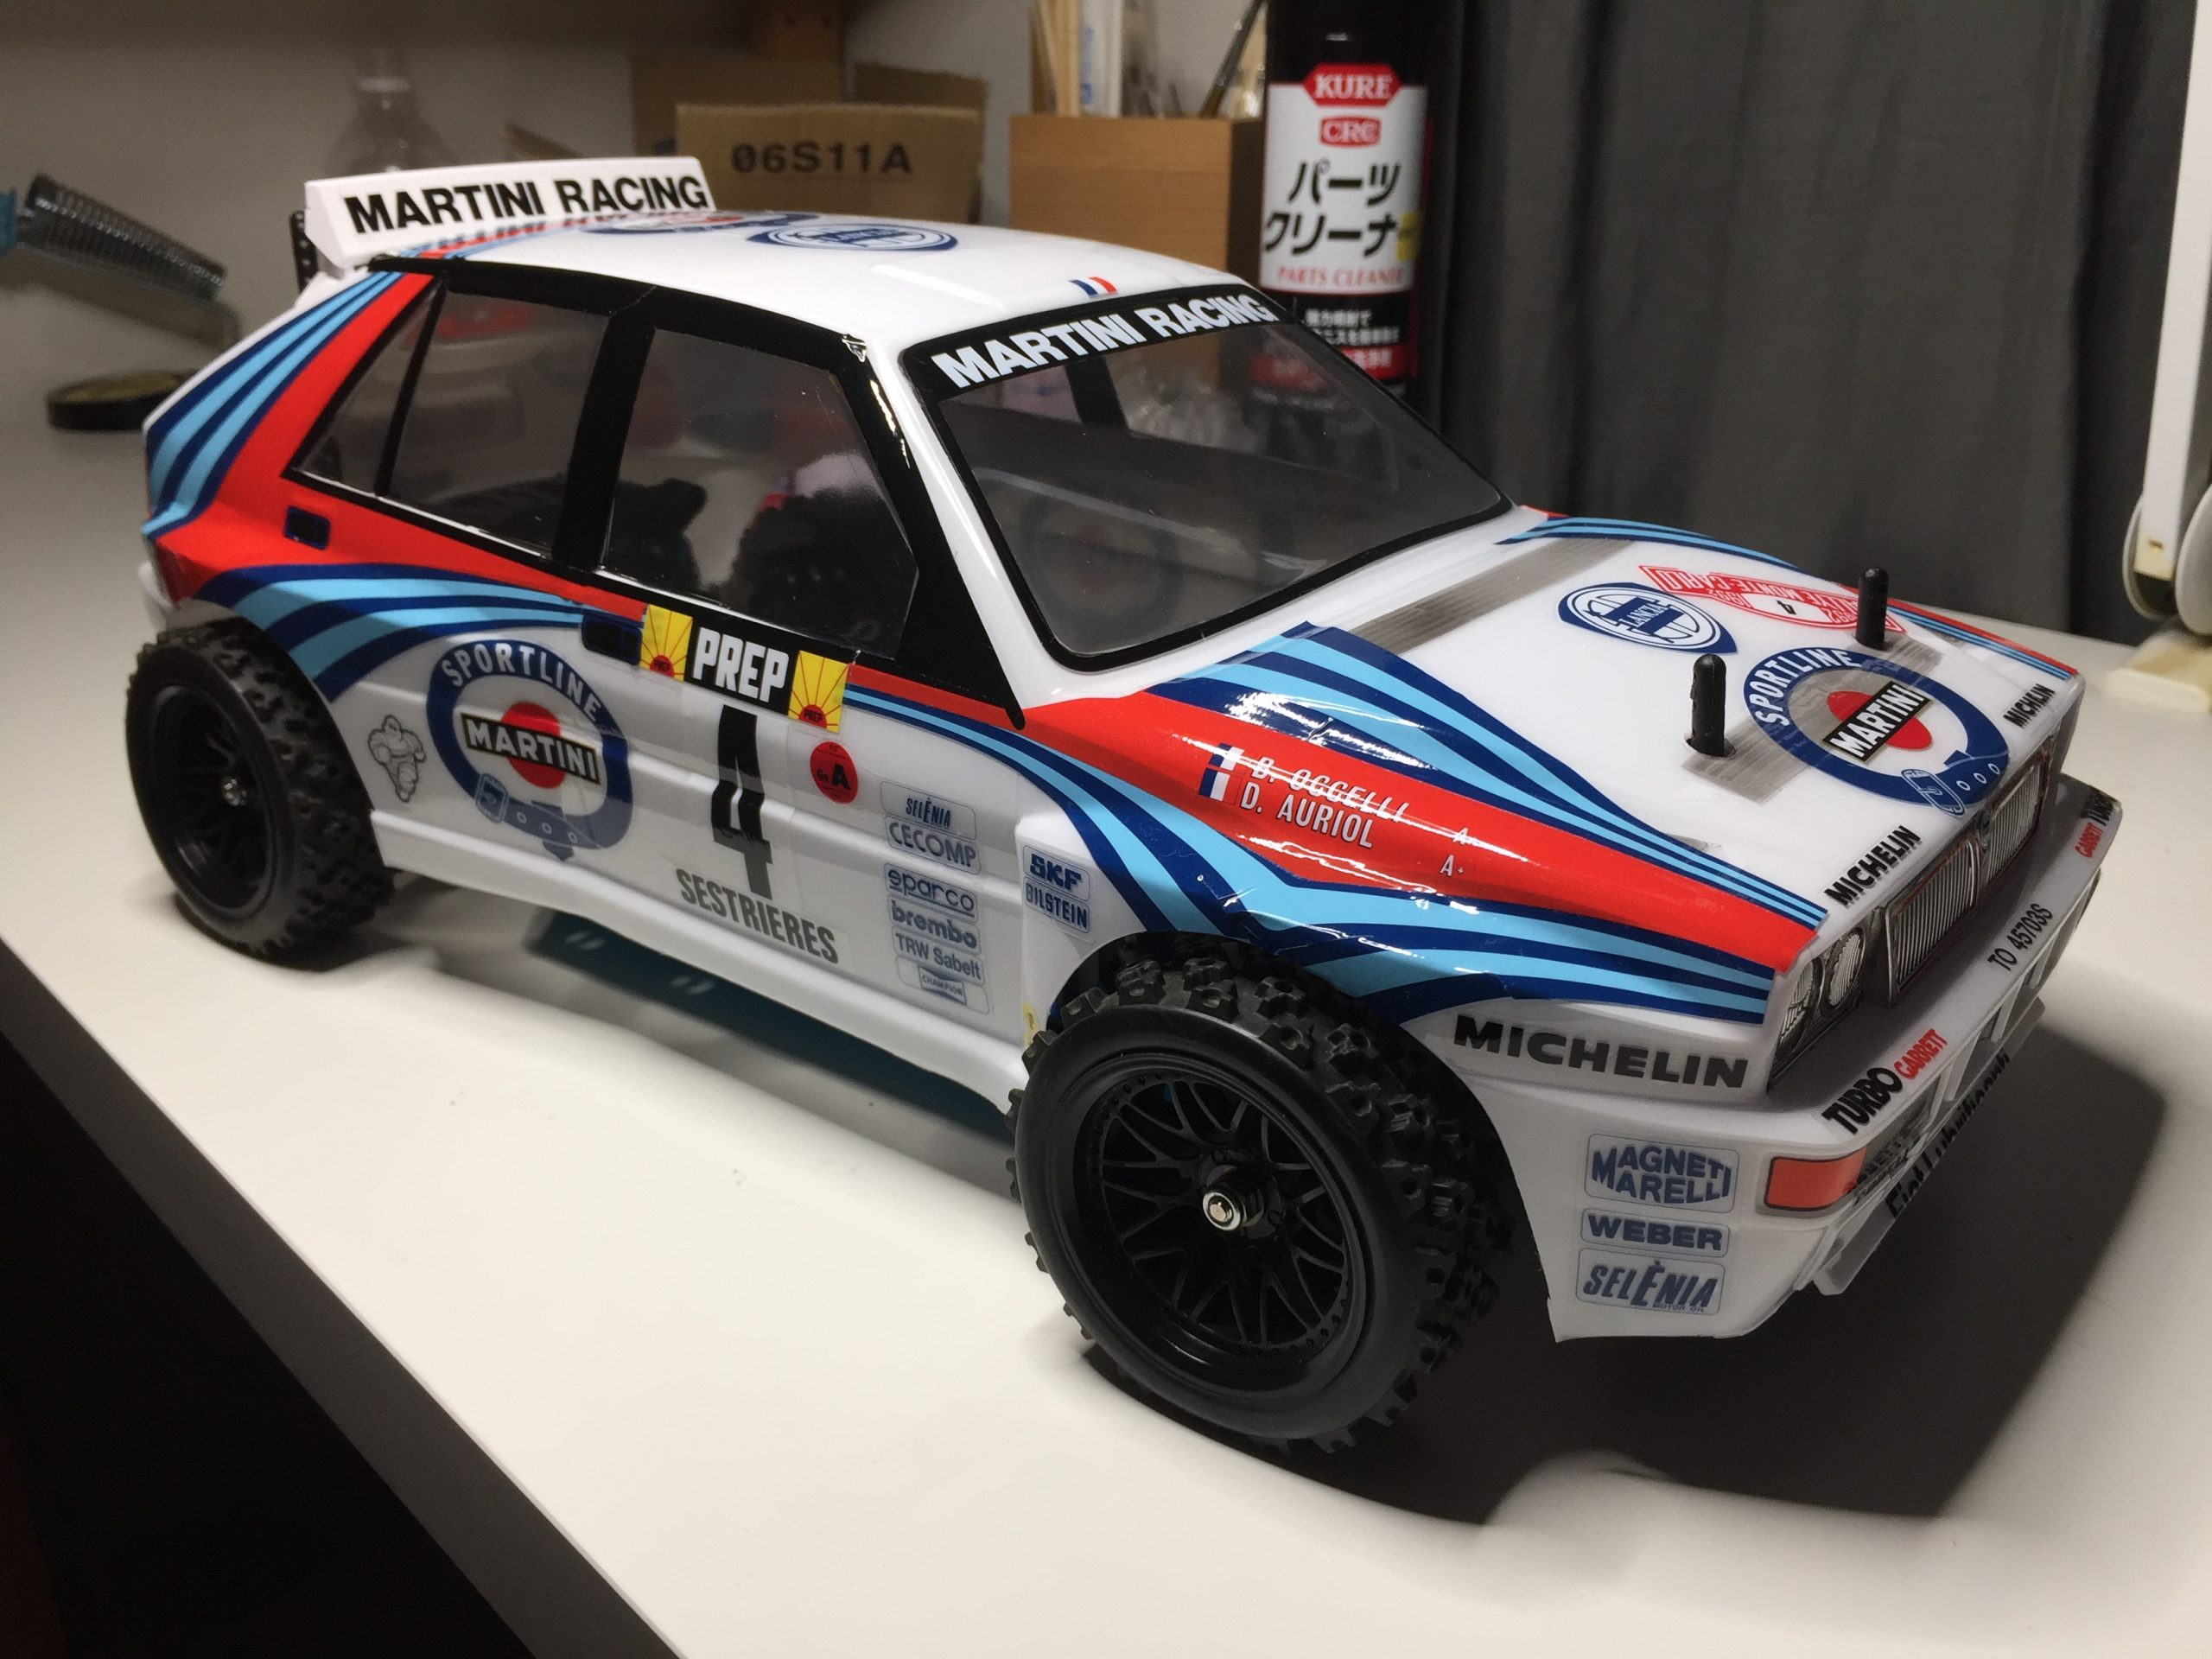 HSP 94123 RC Rally Car Build